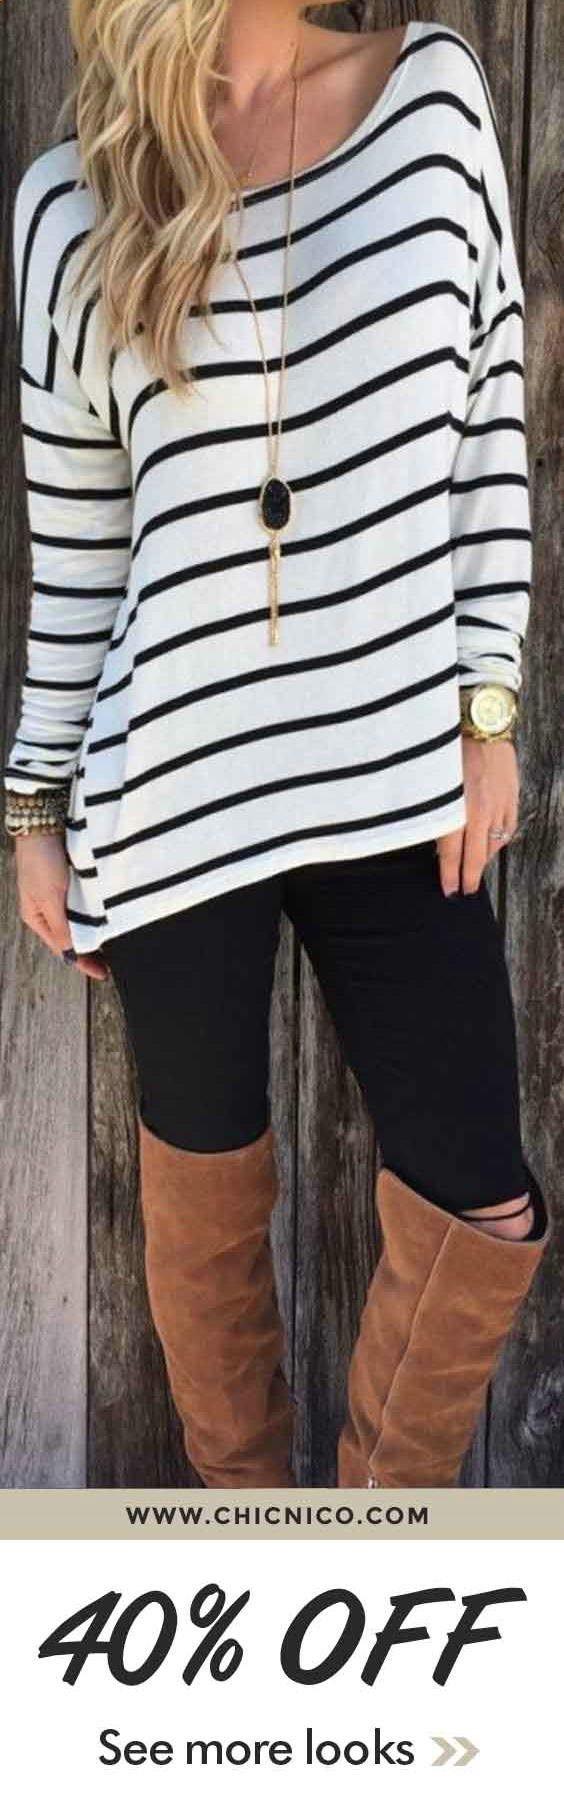 $24.99. Fashion Stripe Top Long Sleeve Shirt